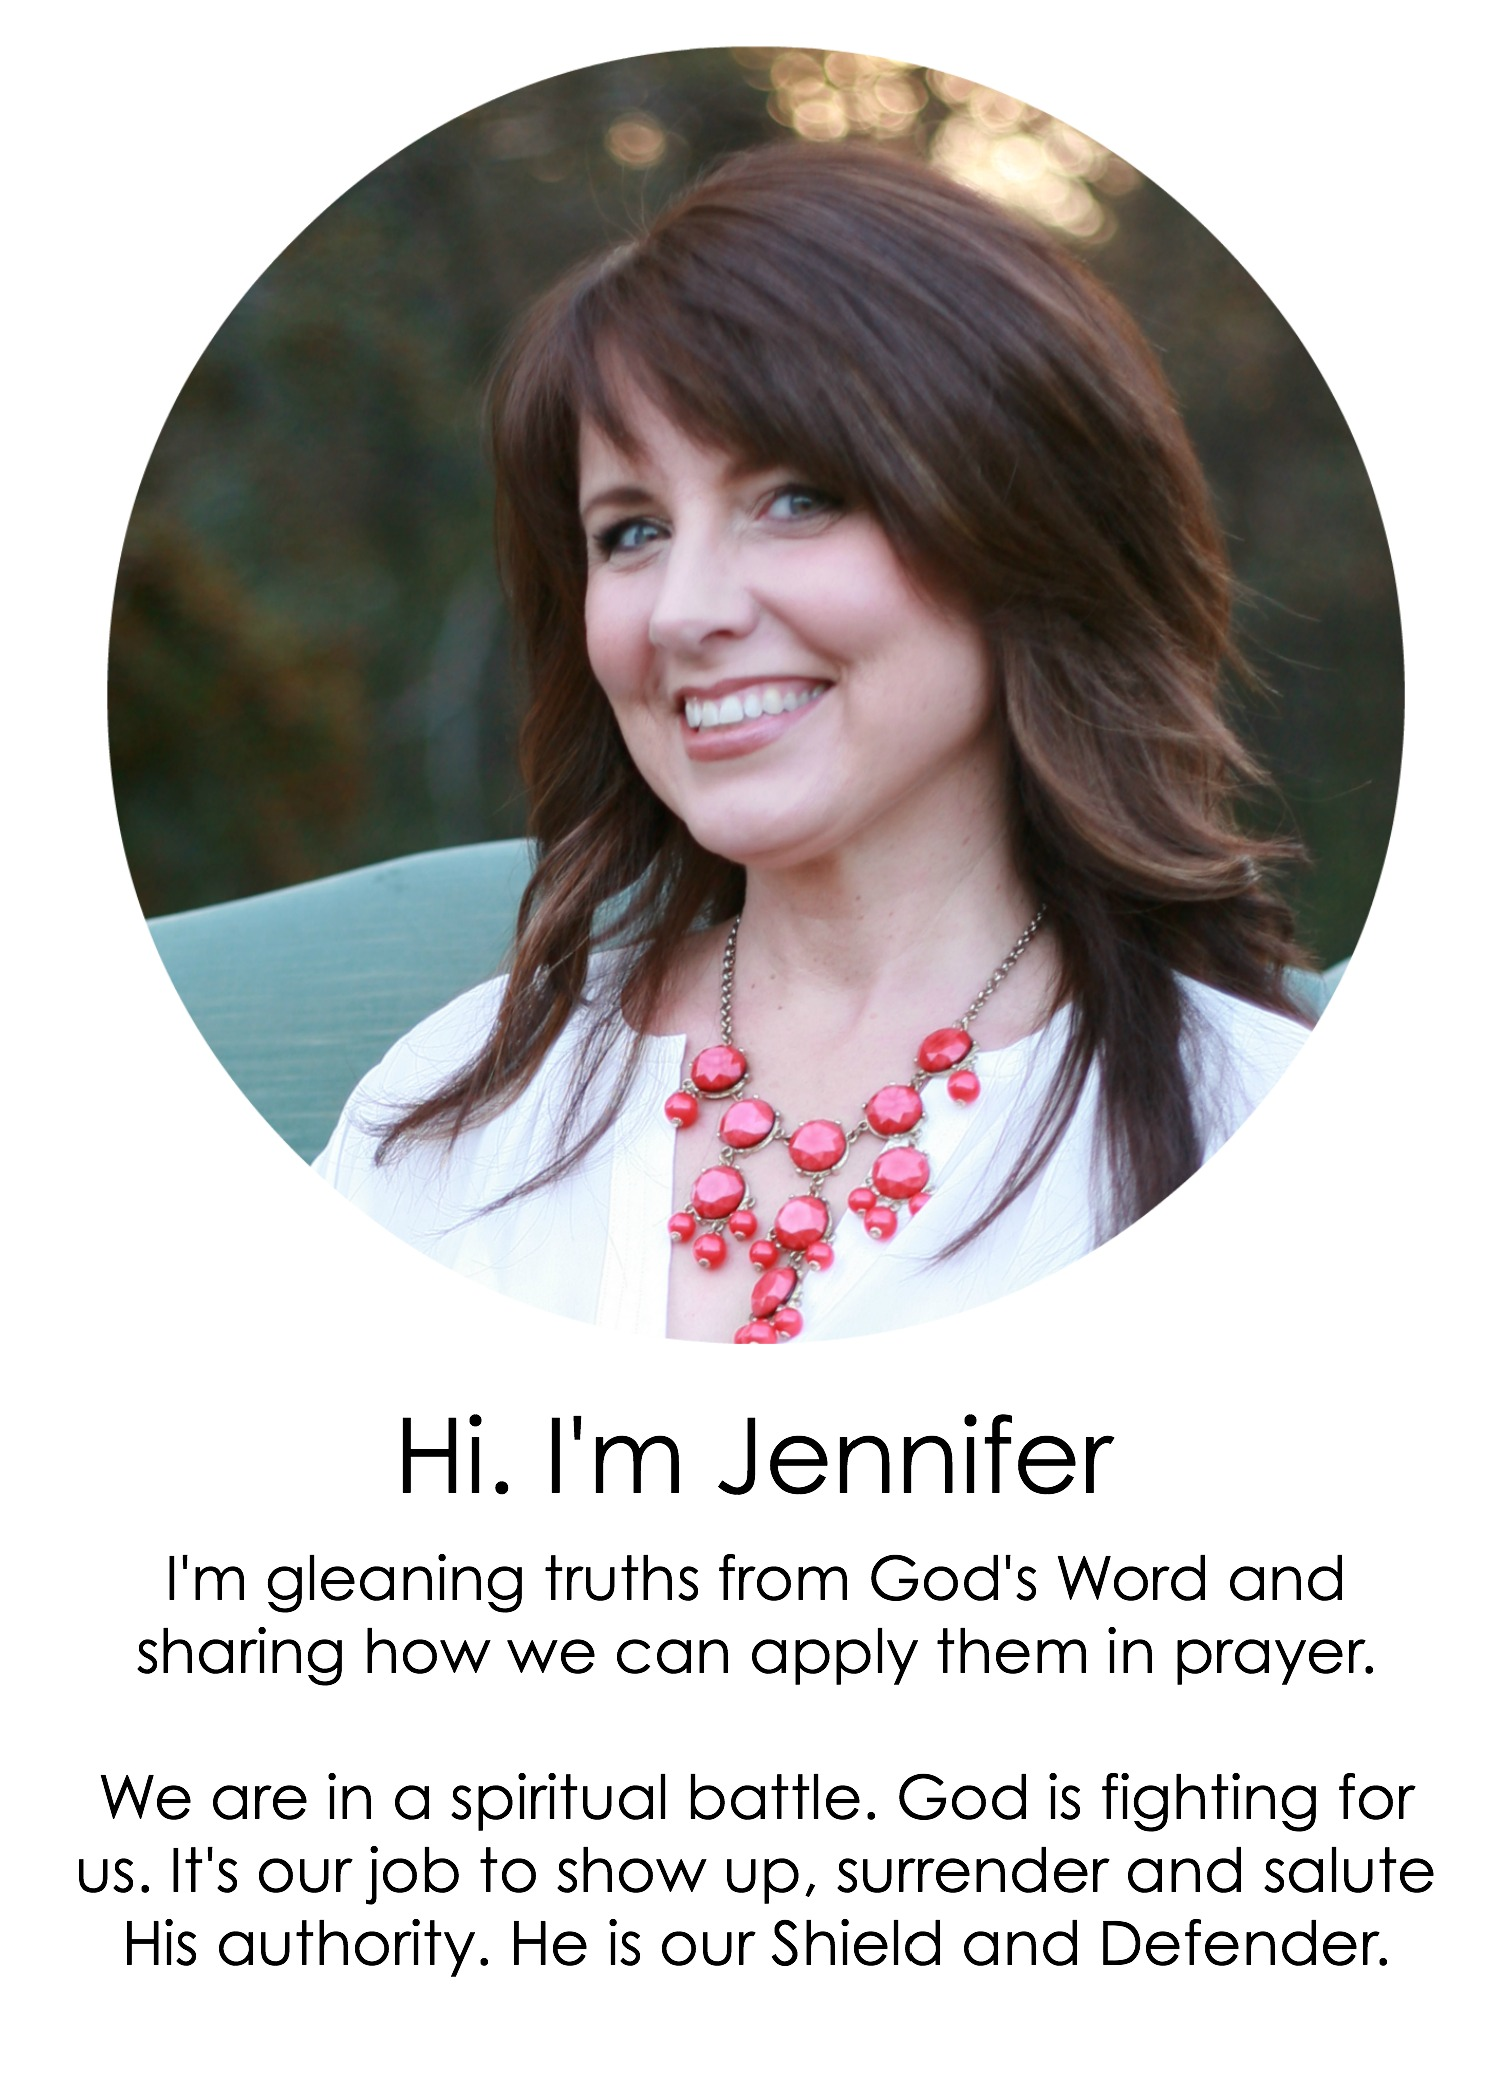 Jennifer O. White welcomes you to Prayerfully Speaking